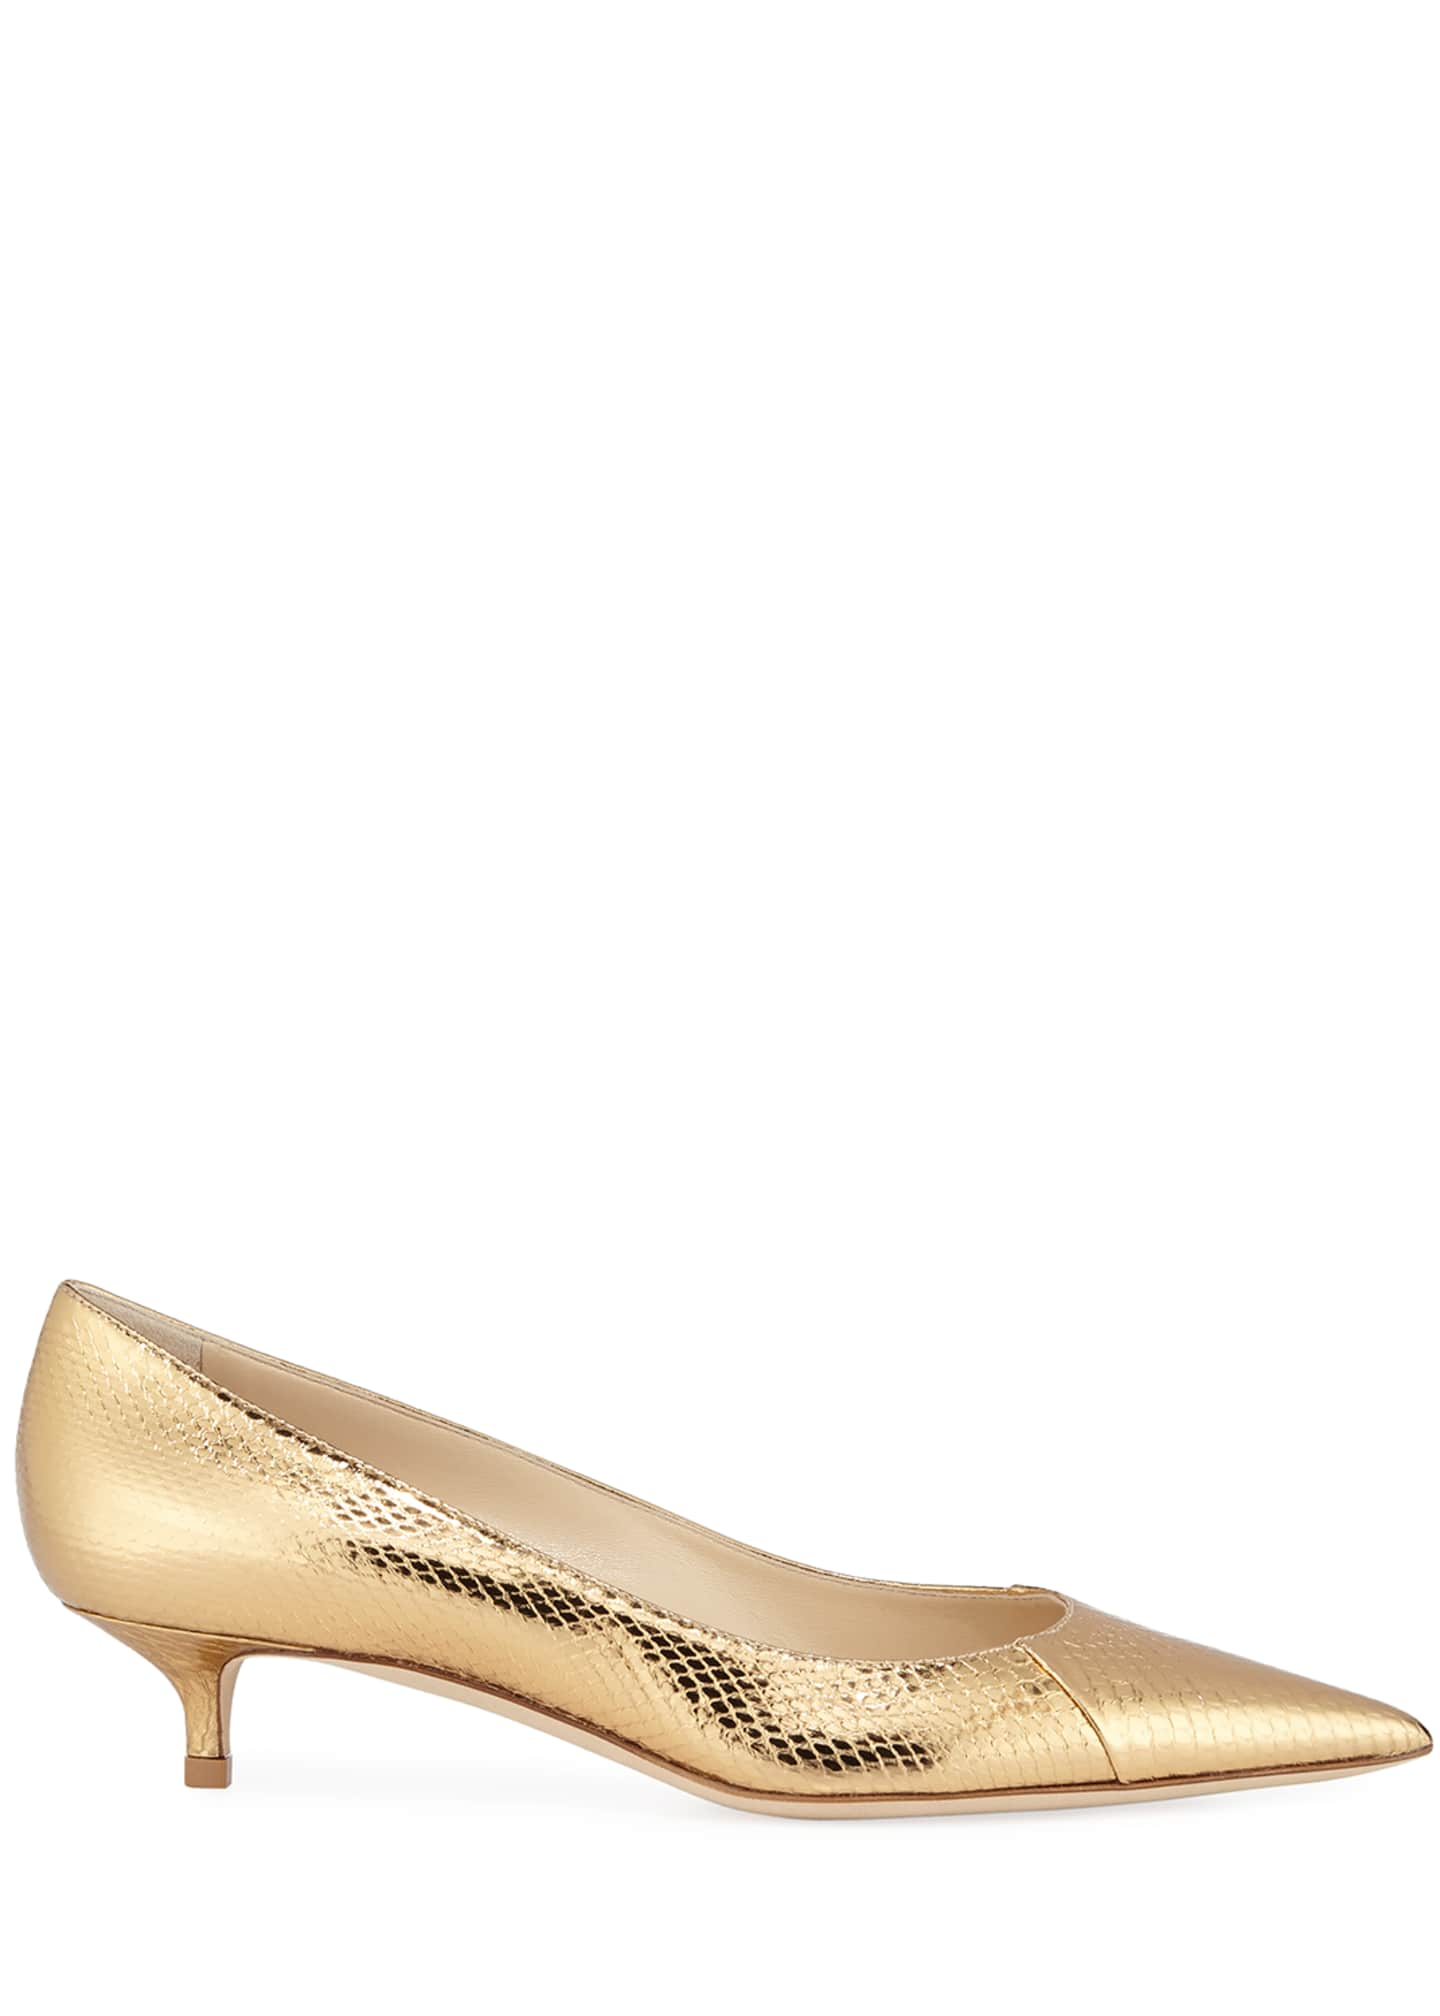 Image 2 of 3: Amelia Snake-Embossed Metallic Pointed Pumps